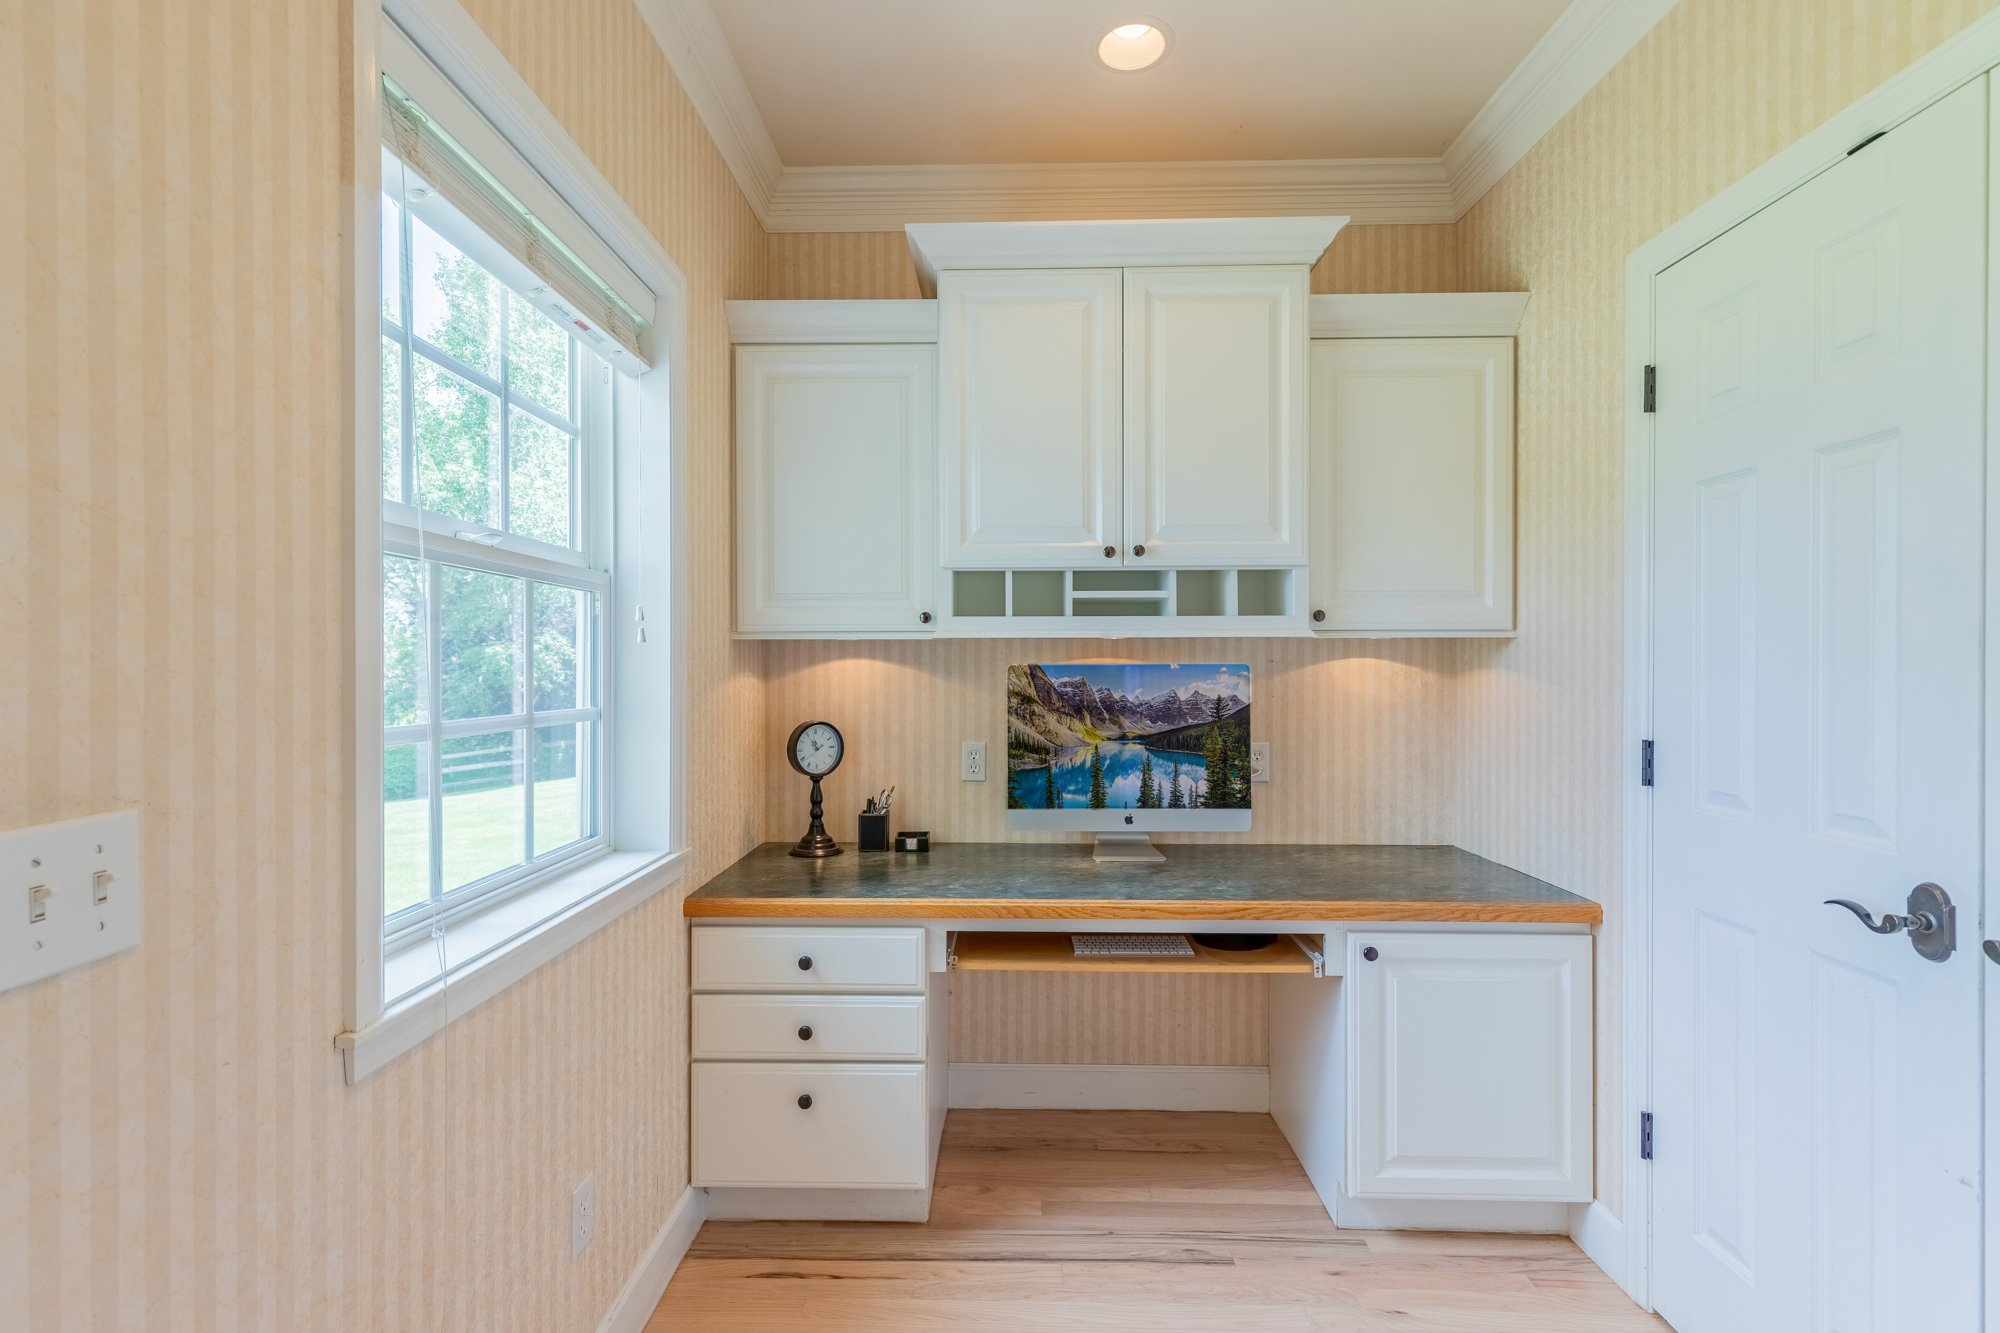 Built In Desk - 2049 Brook Way Montrose, Co 81403 - Atha Team Luxury Real Estate